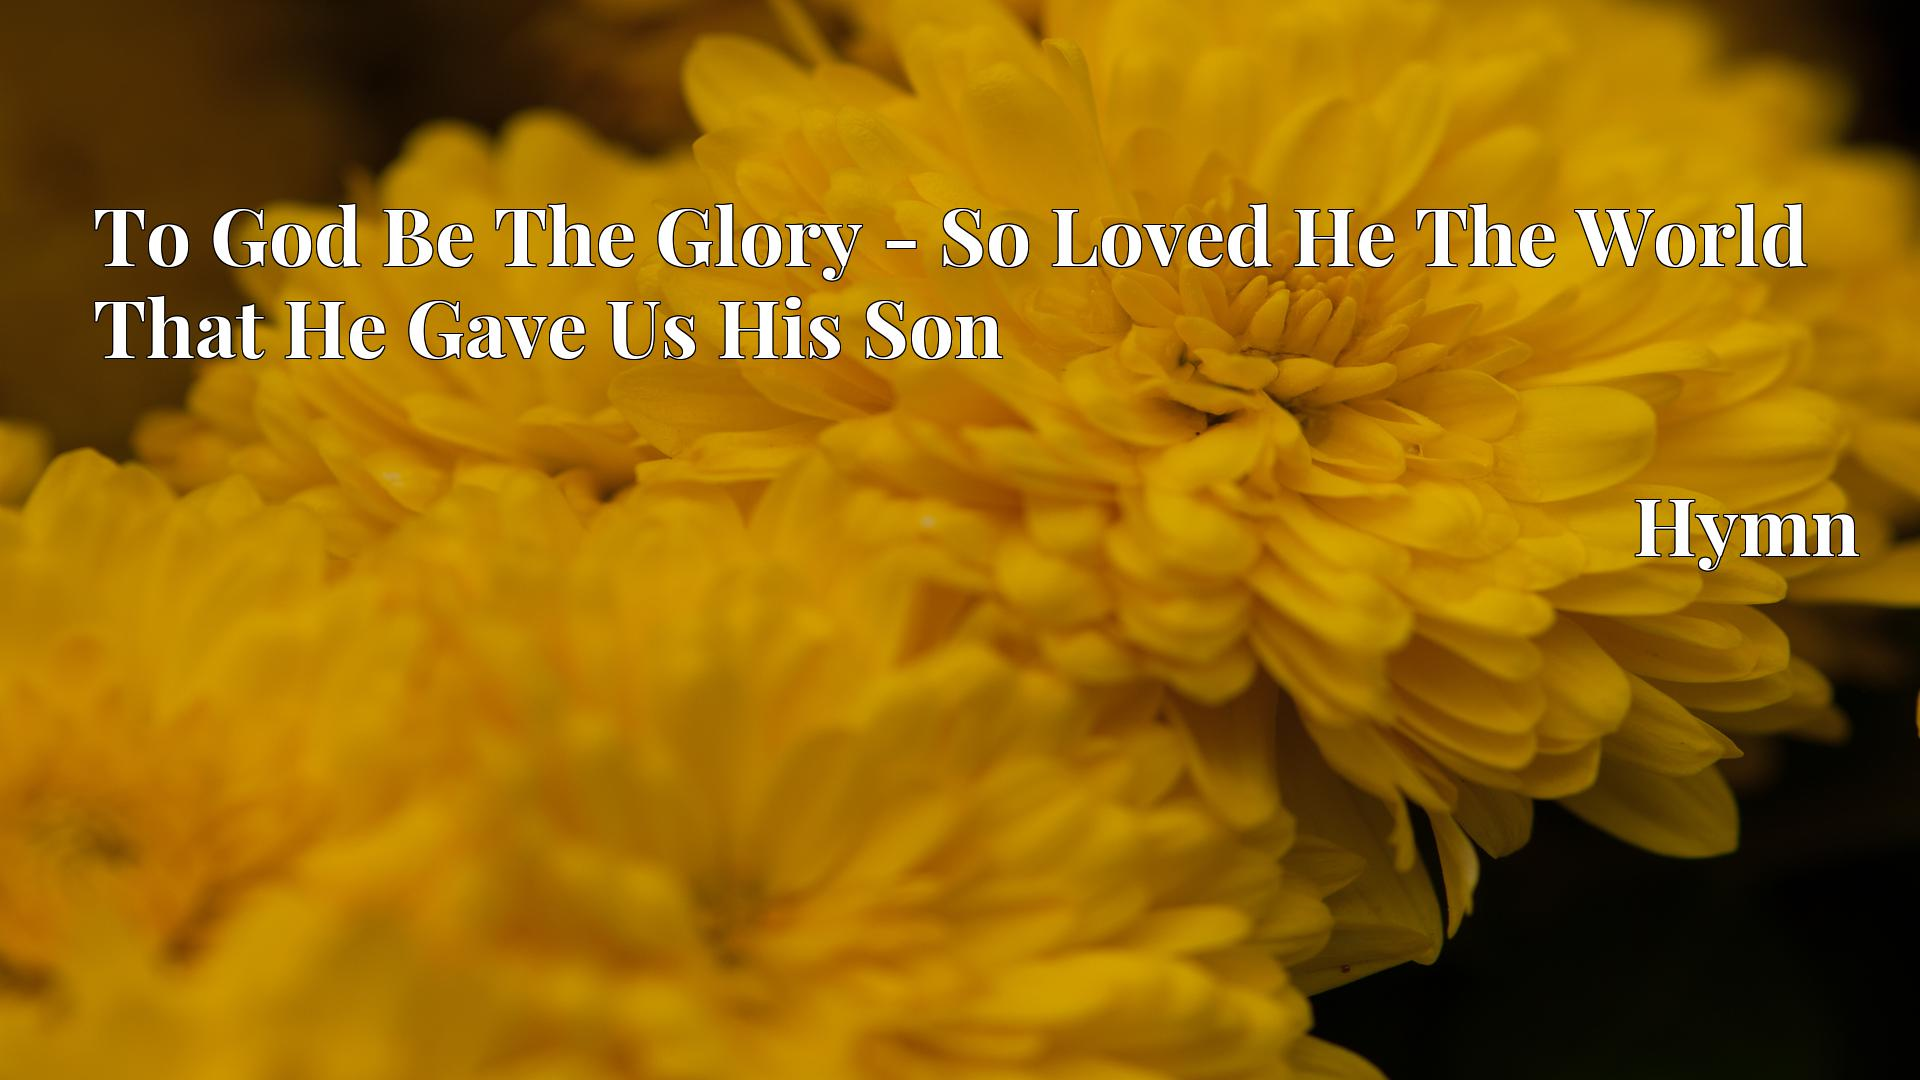 To God Be The Glory - So Loved He The World That He Gave Us His Son - Hymn